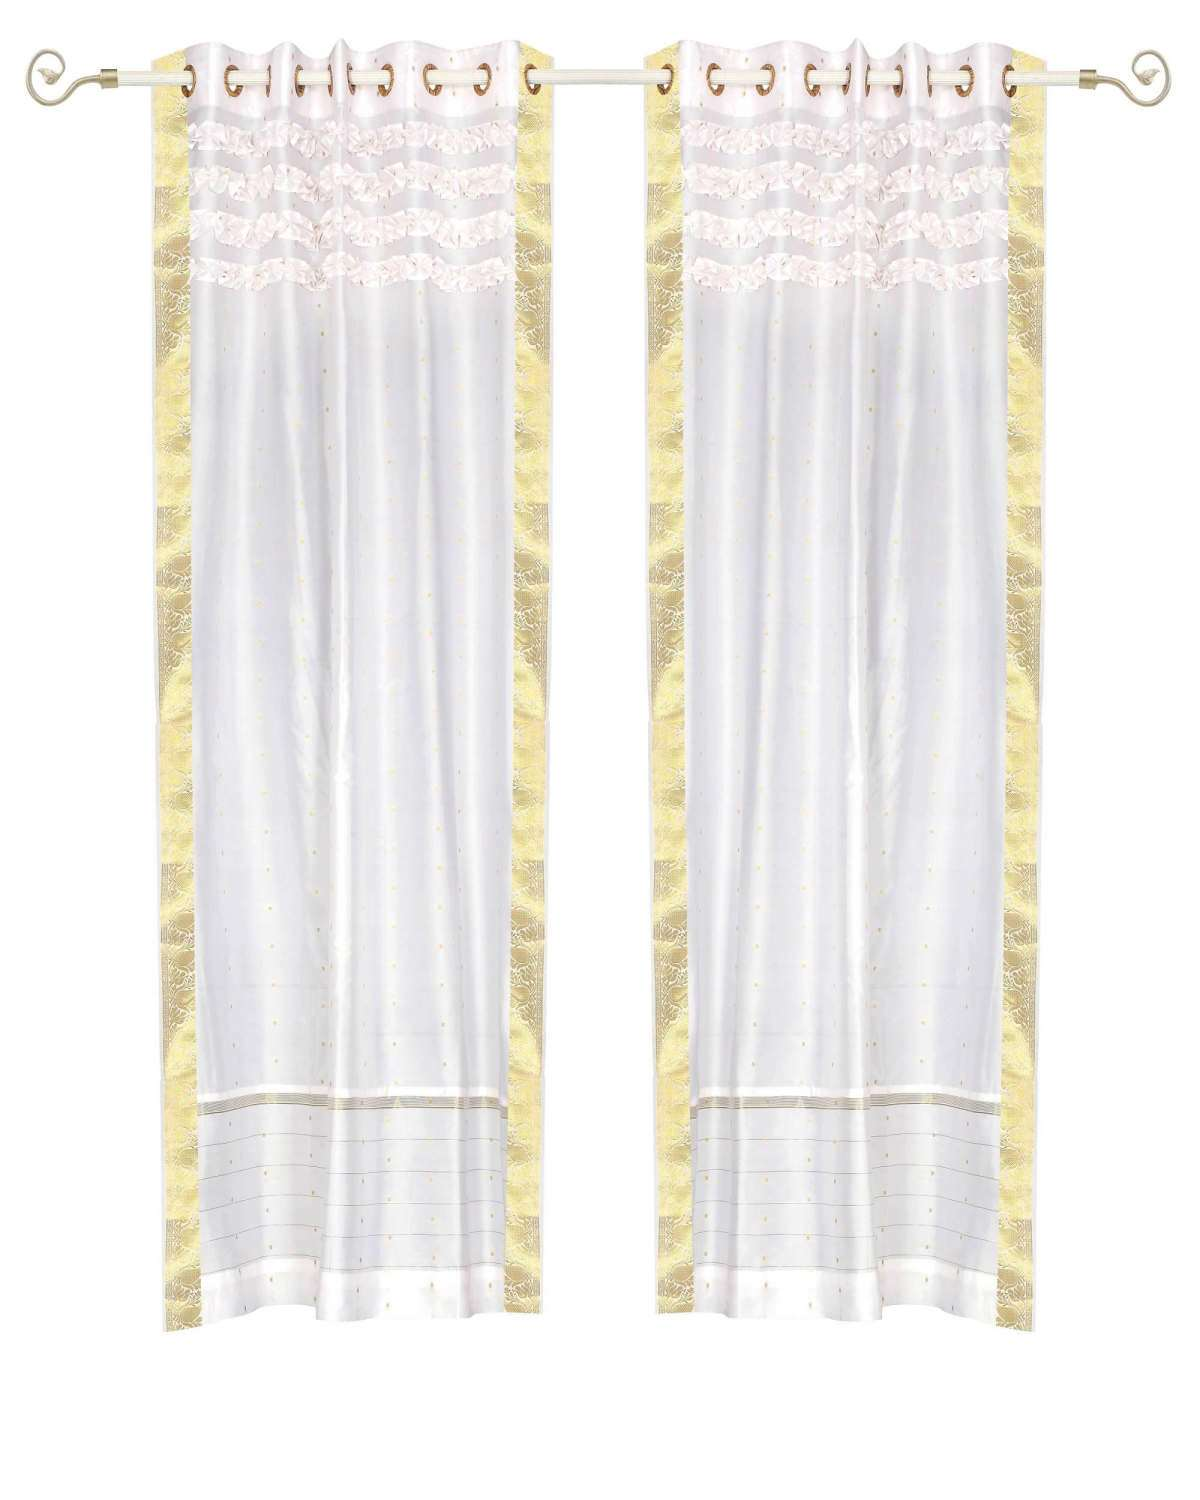 White Hand Crafted Grommet Top  Sheer Sari Curtain  Drape  Panel   - 43W x 108L - Piece